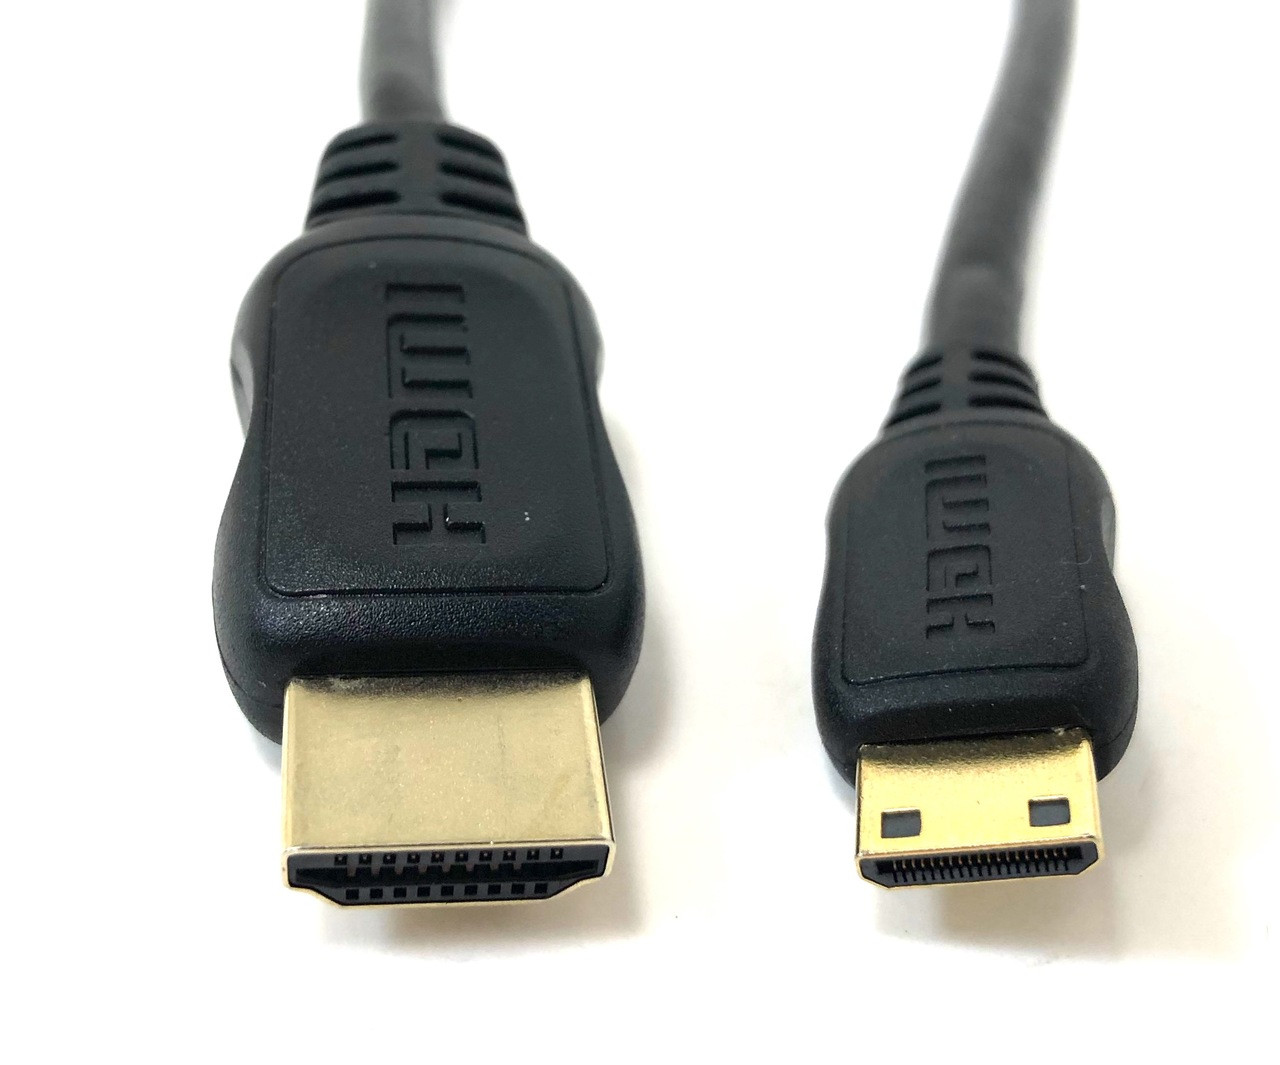 1ft Mini HDMI to HDMI Adapter Cable